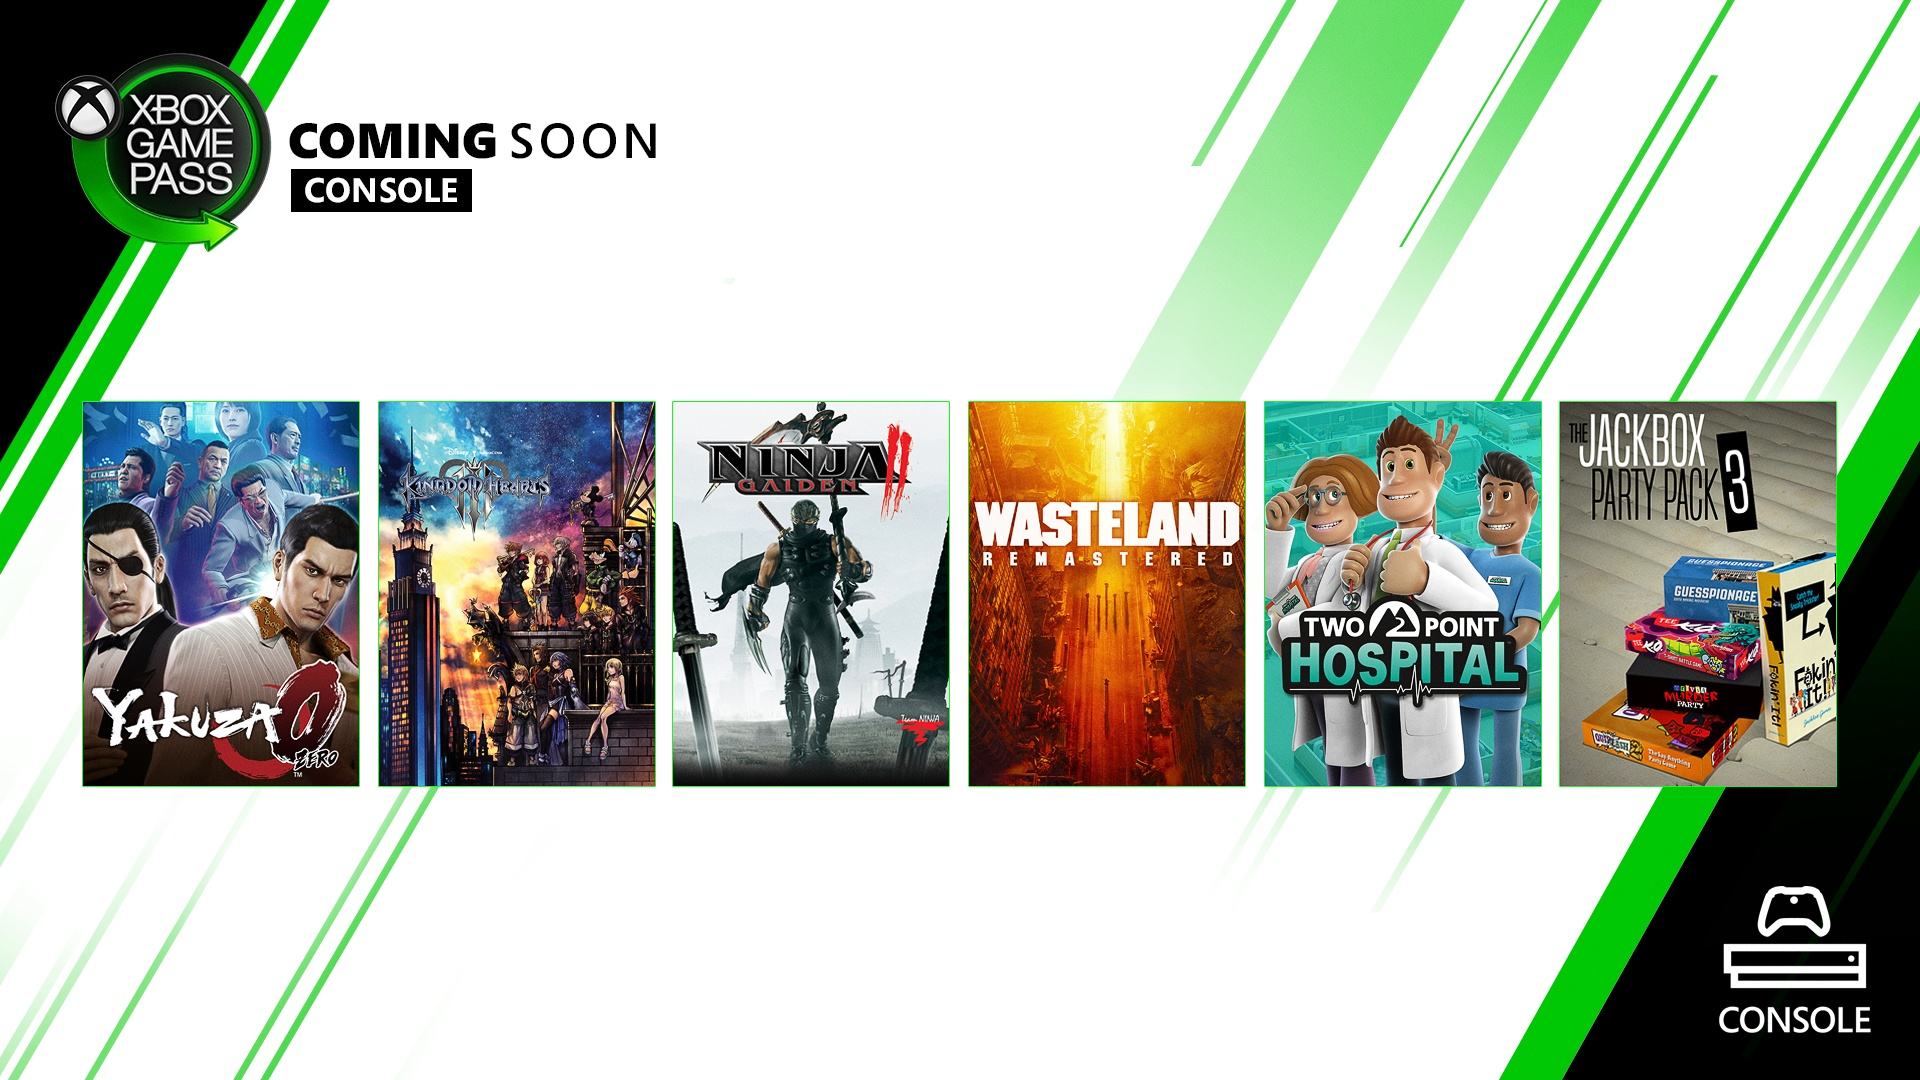 Xbox Game Pass for Console - February Wave 2 Update